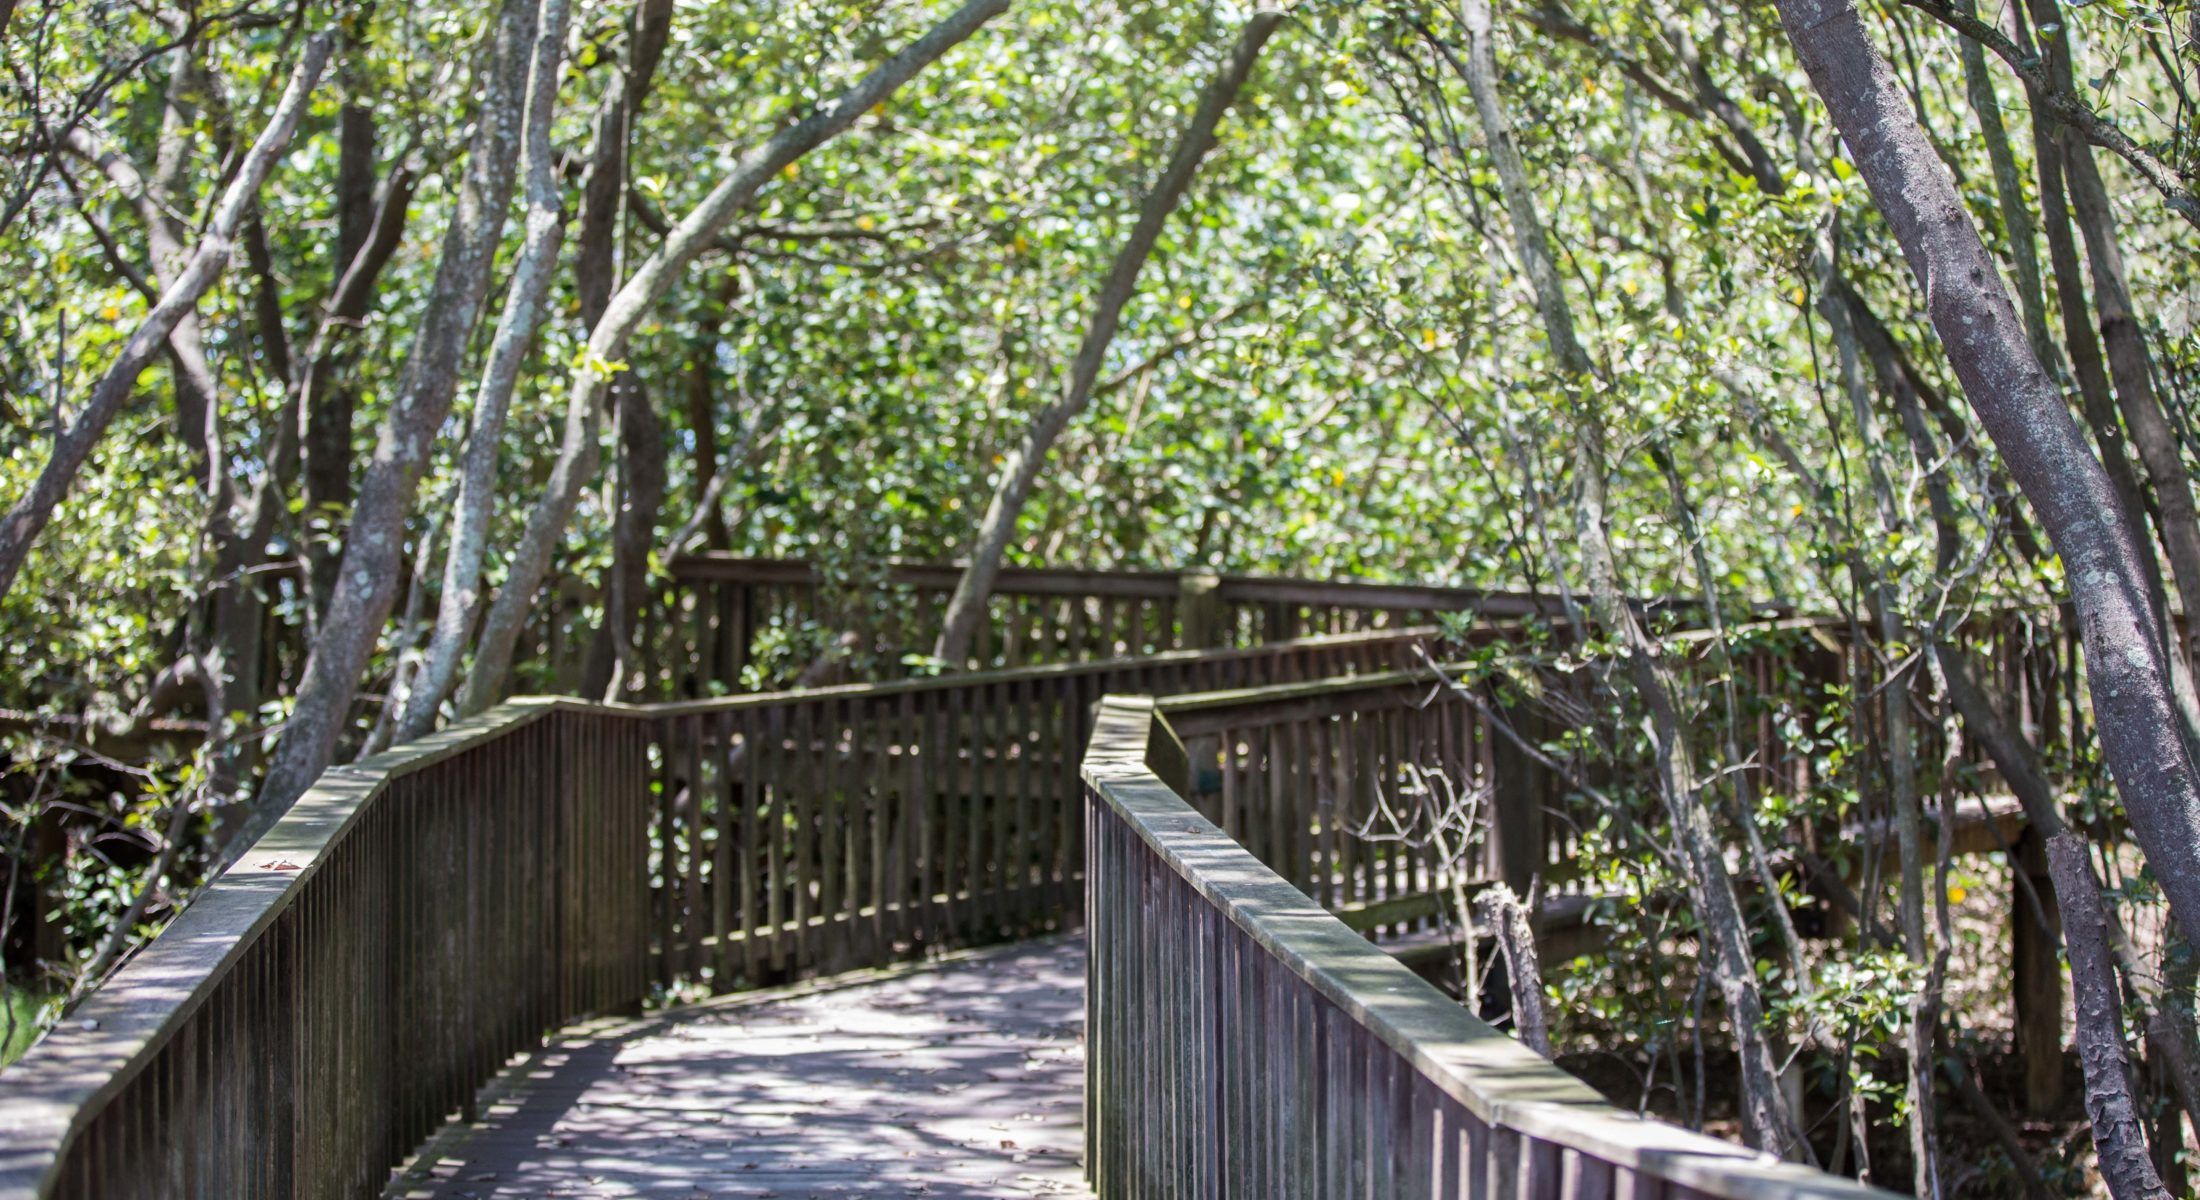 Osprey House has accessible boardwalks for nature exploration